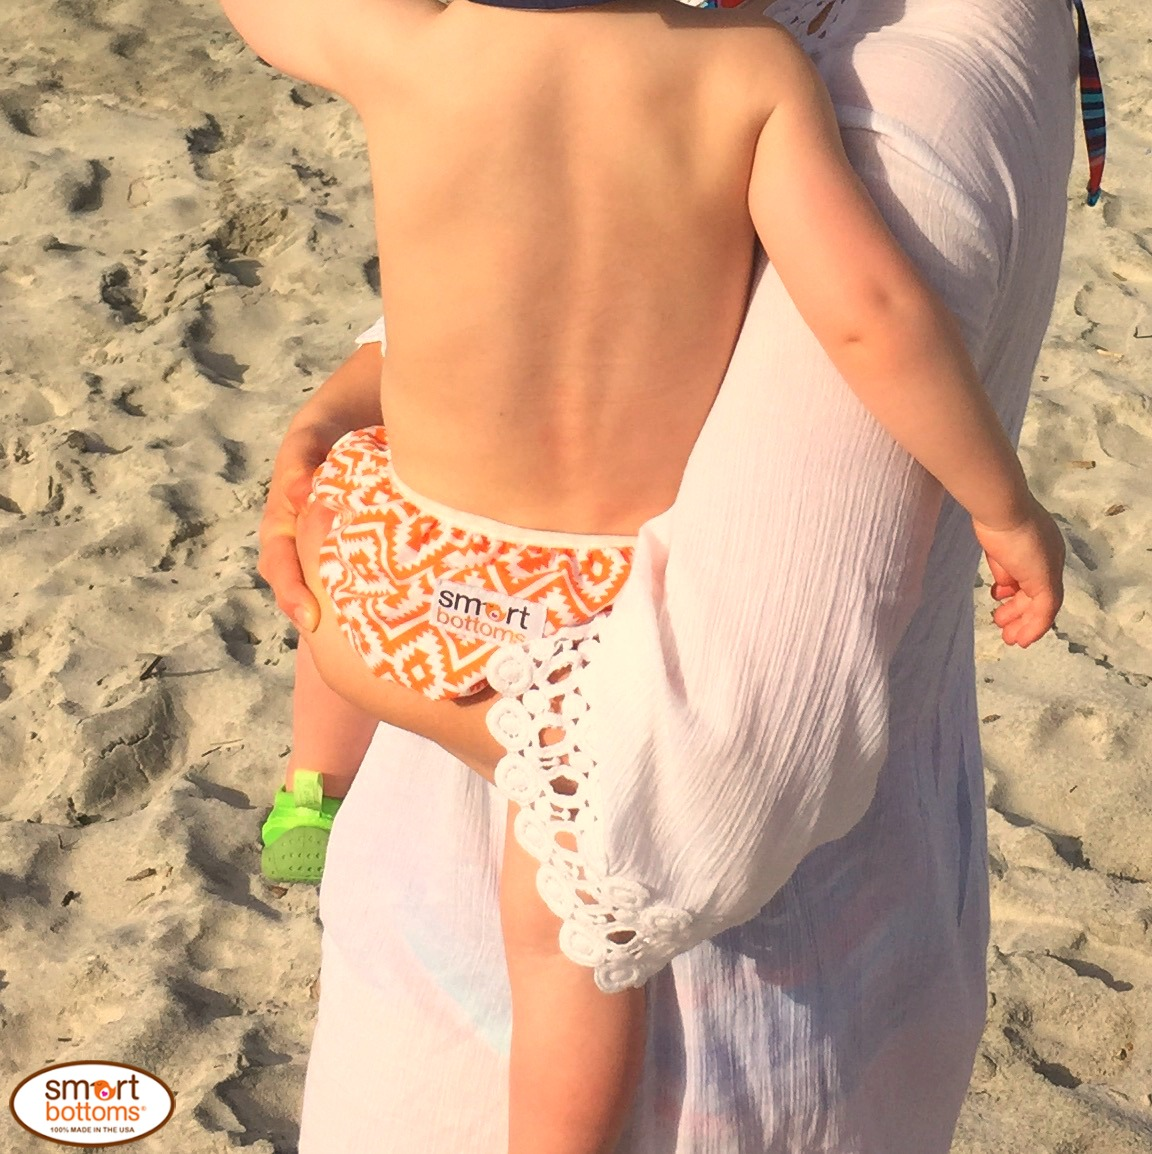 Smart Bottoms Swim Diaper orange and white aztec print Eduardo